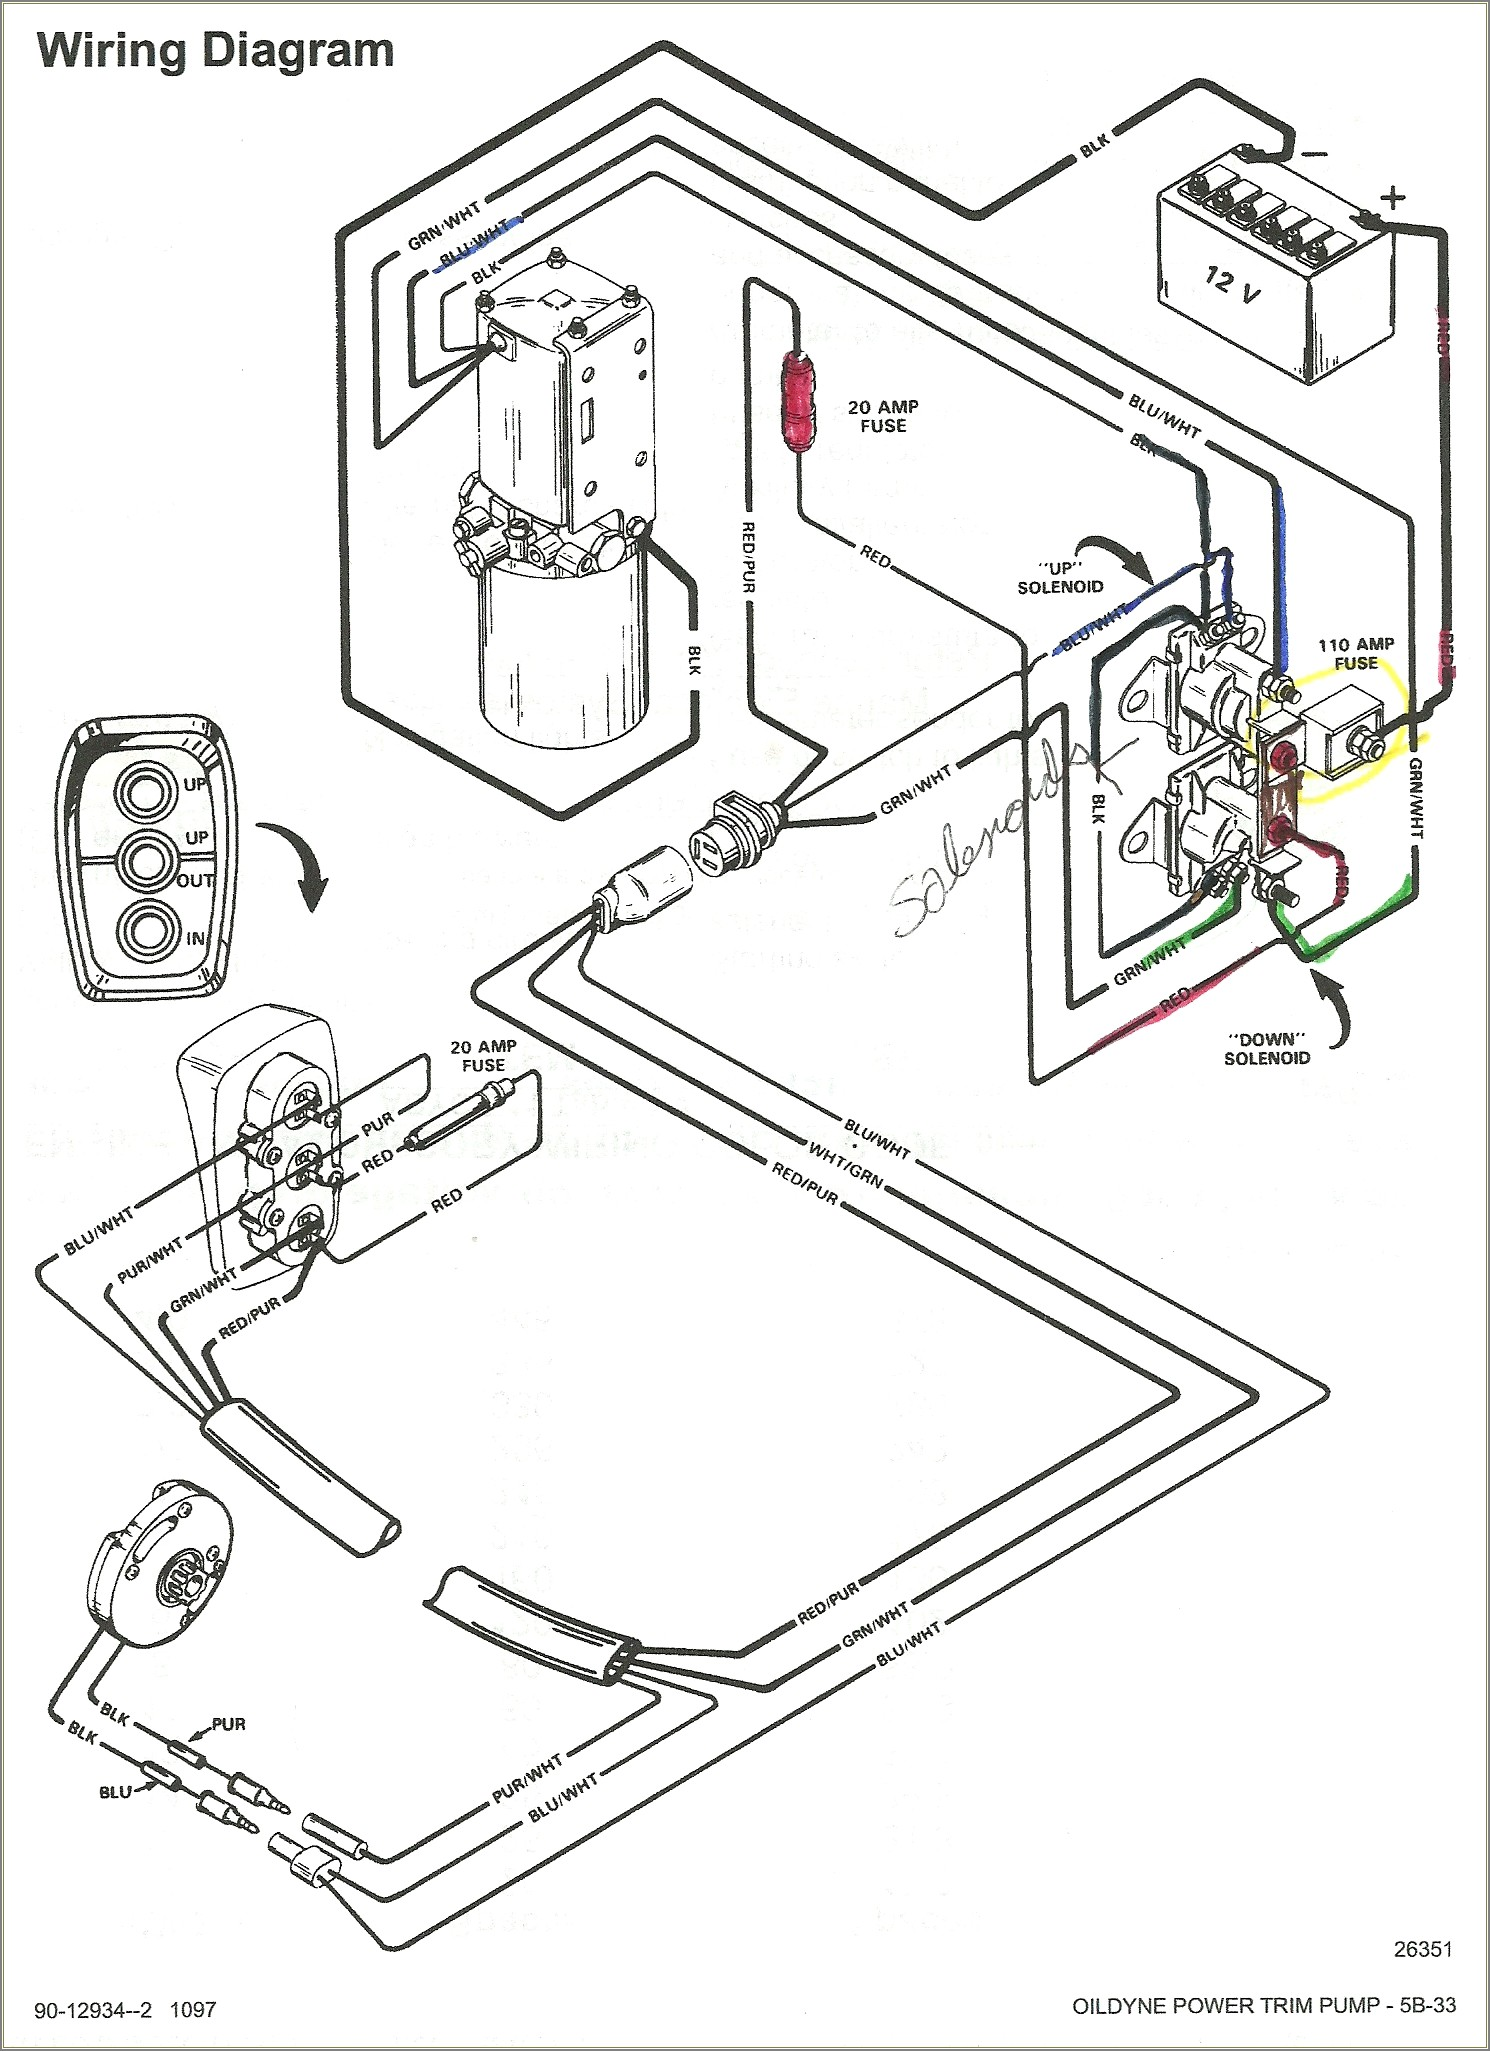 Mercruiser Tilt Trim Wiring Diagram